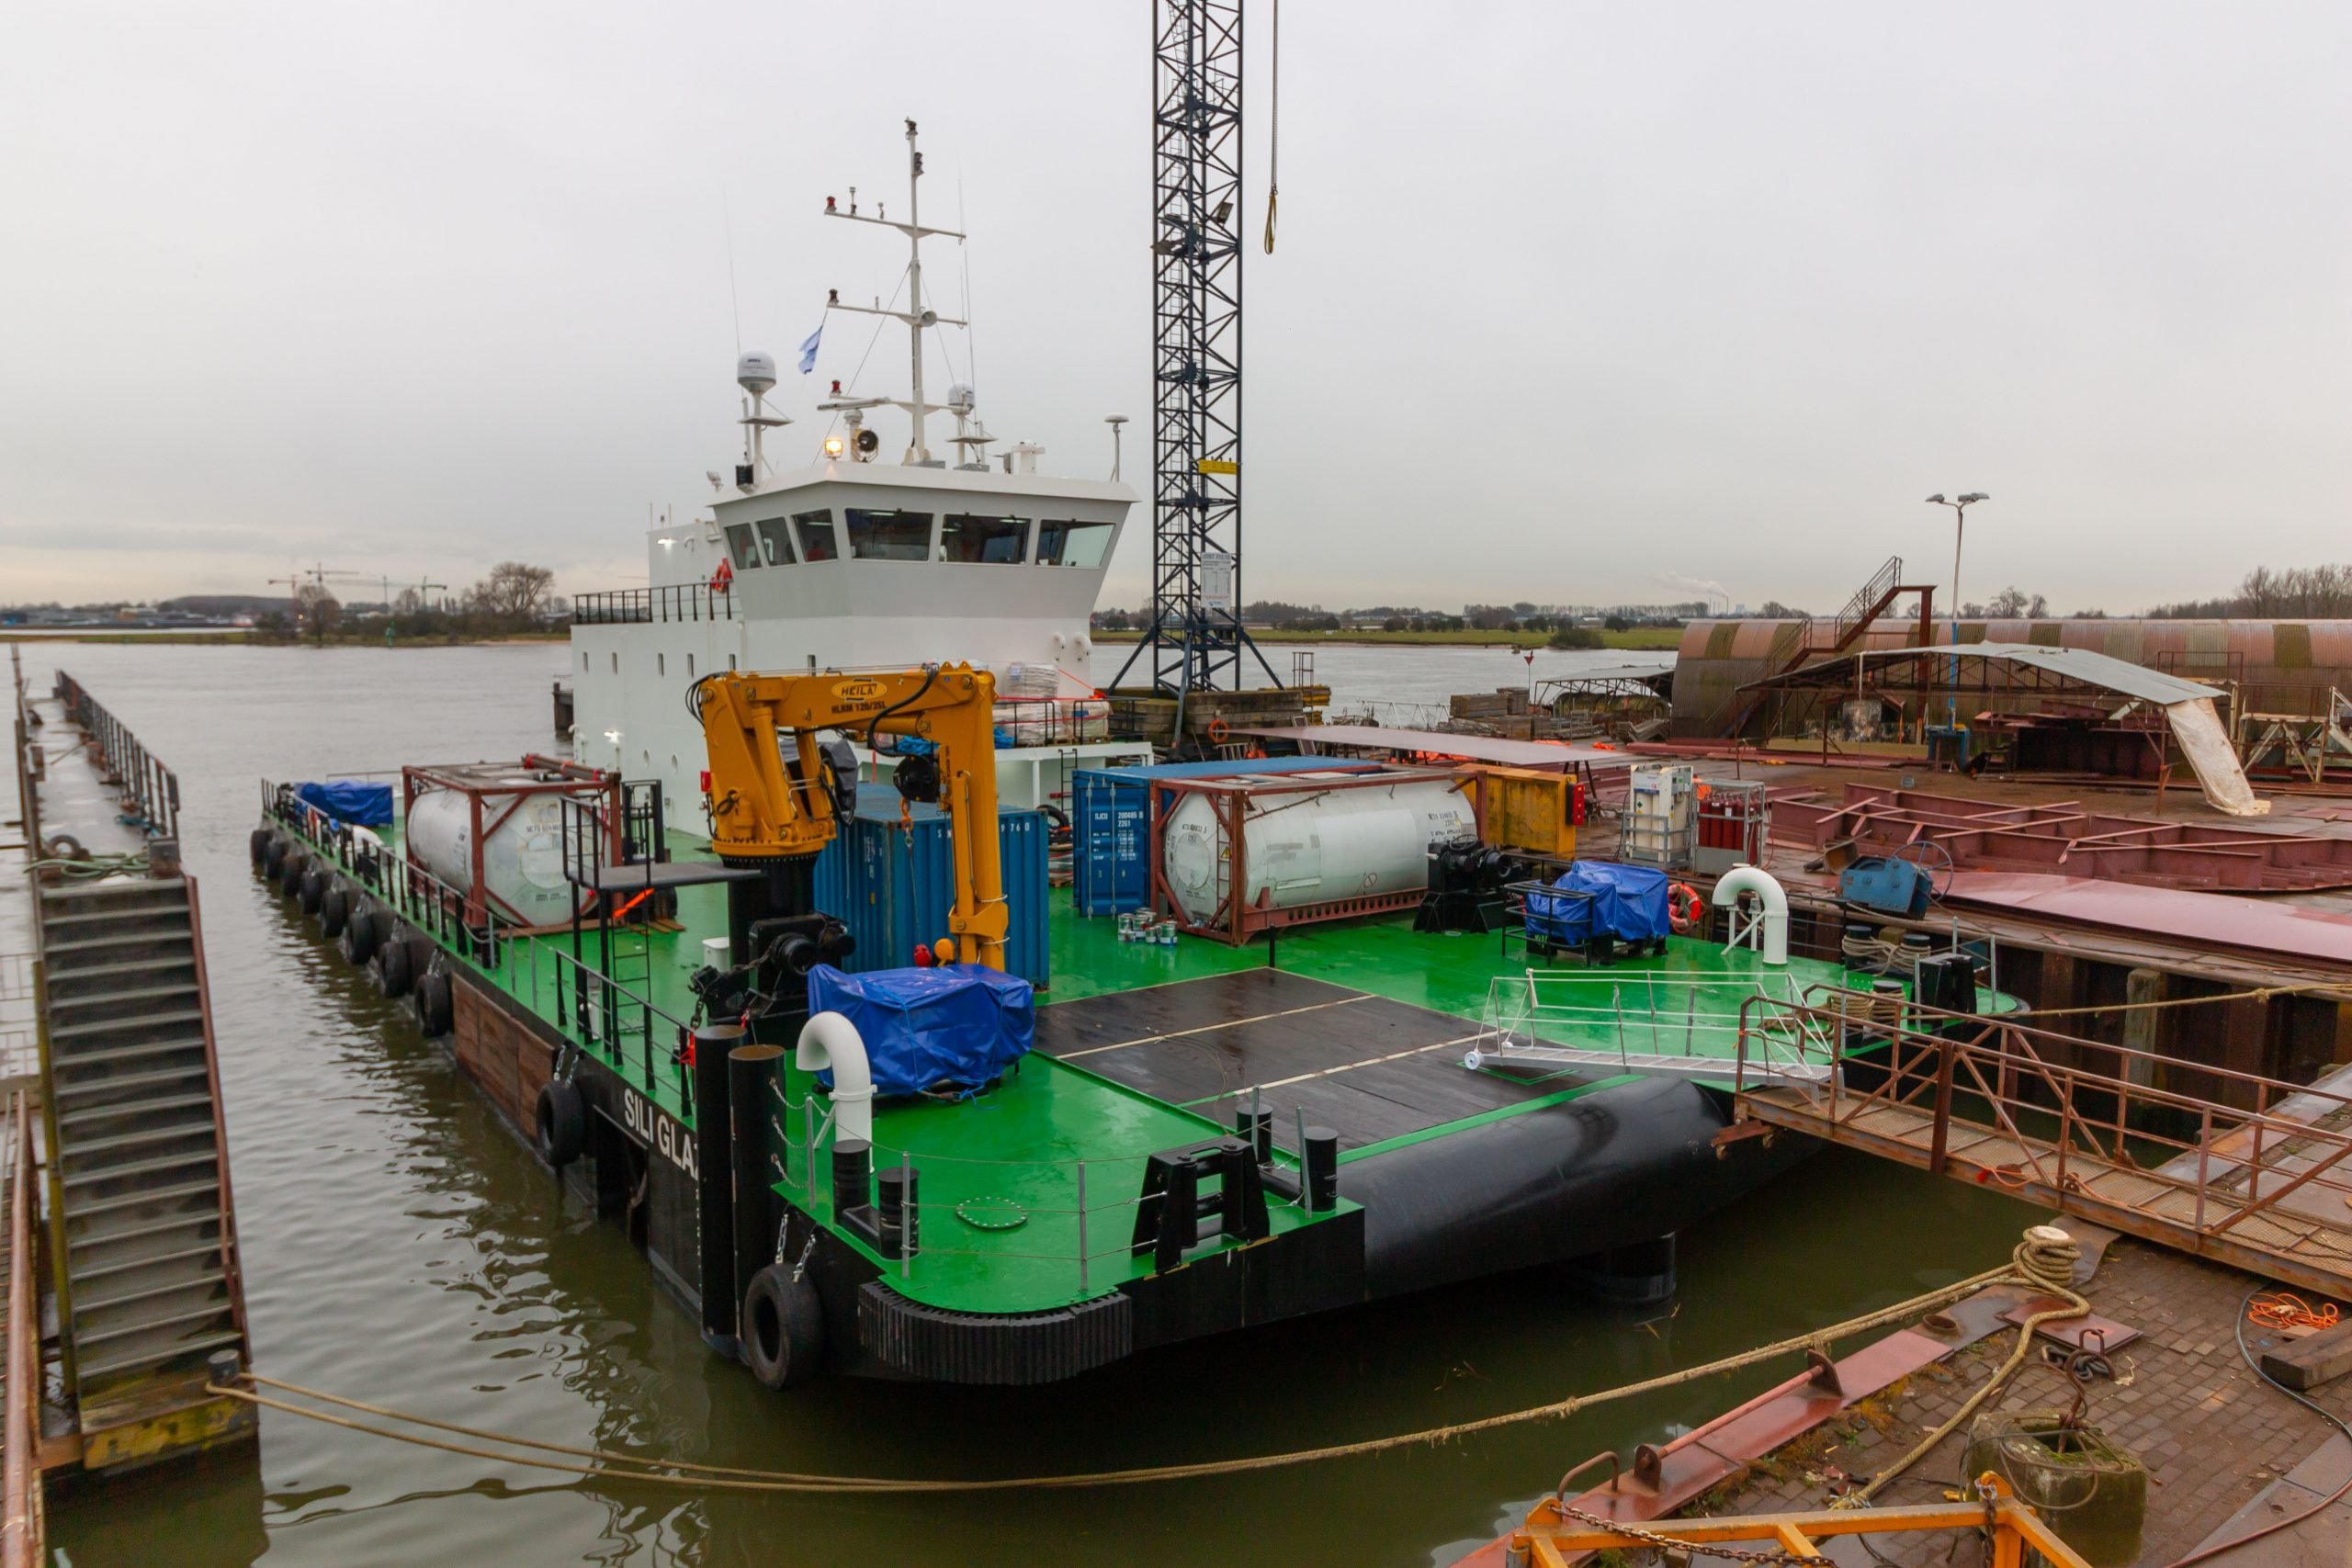 Diving Support Barge